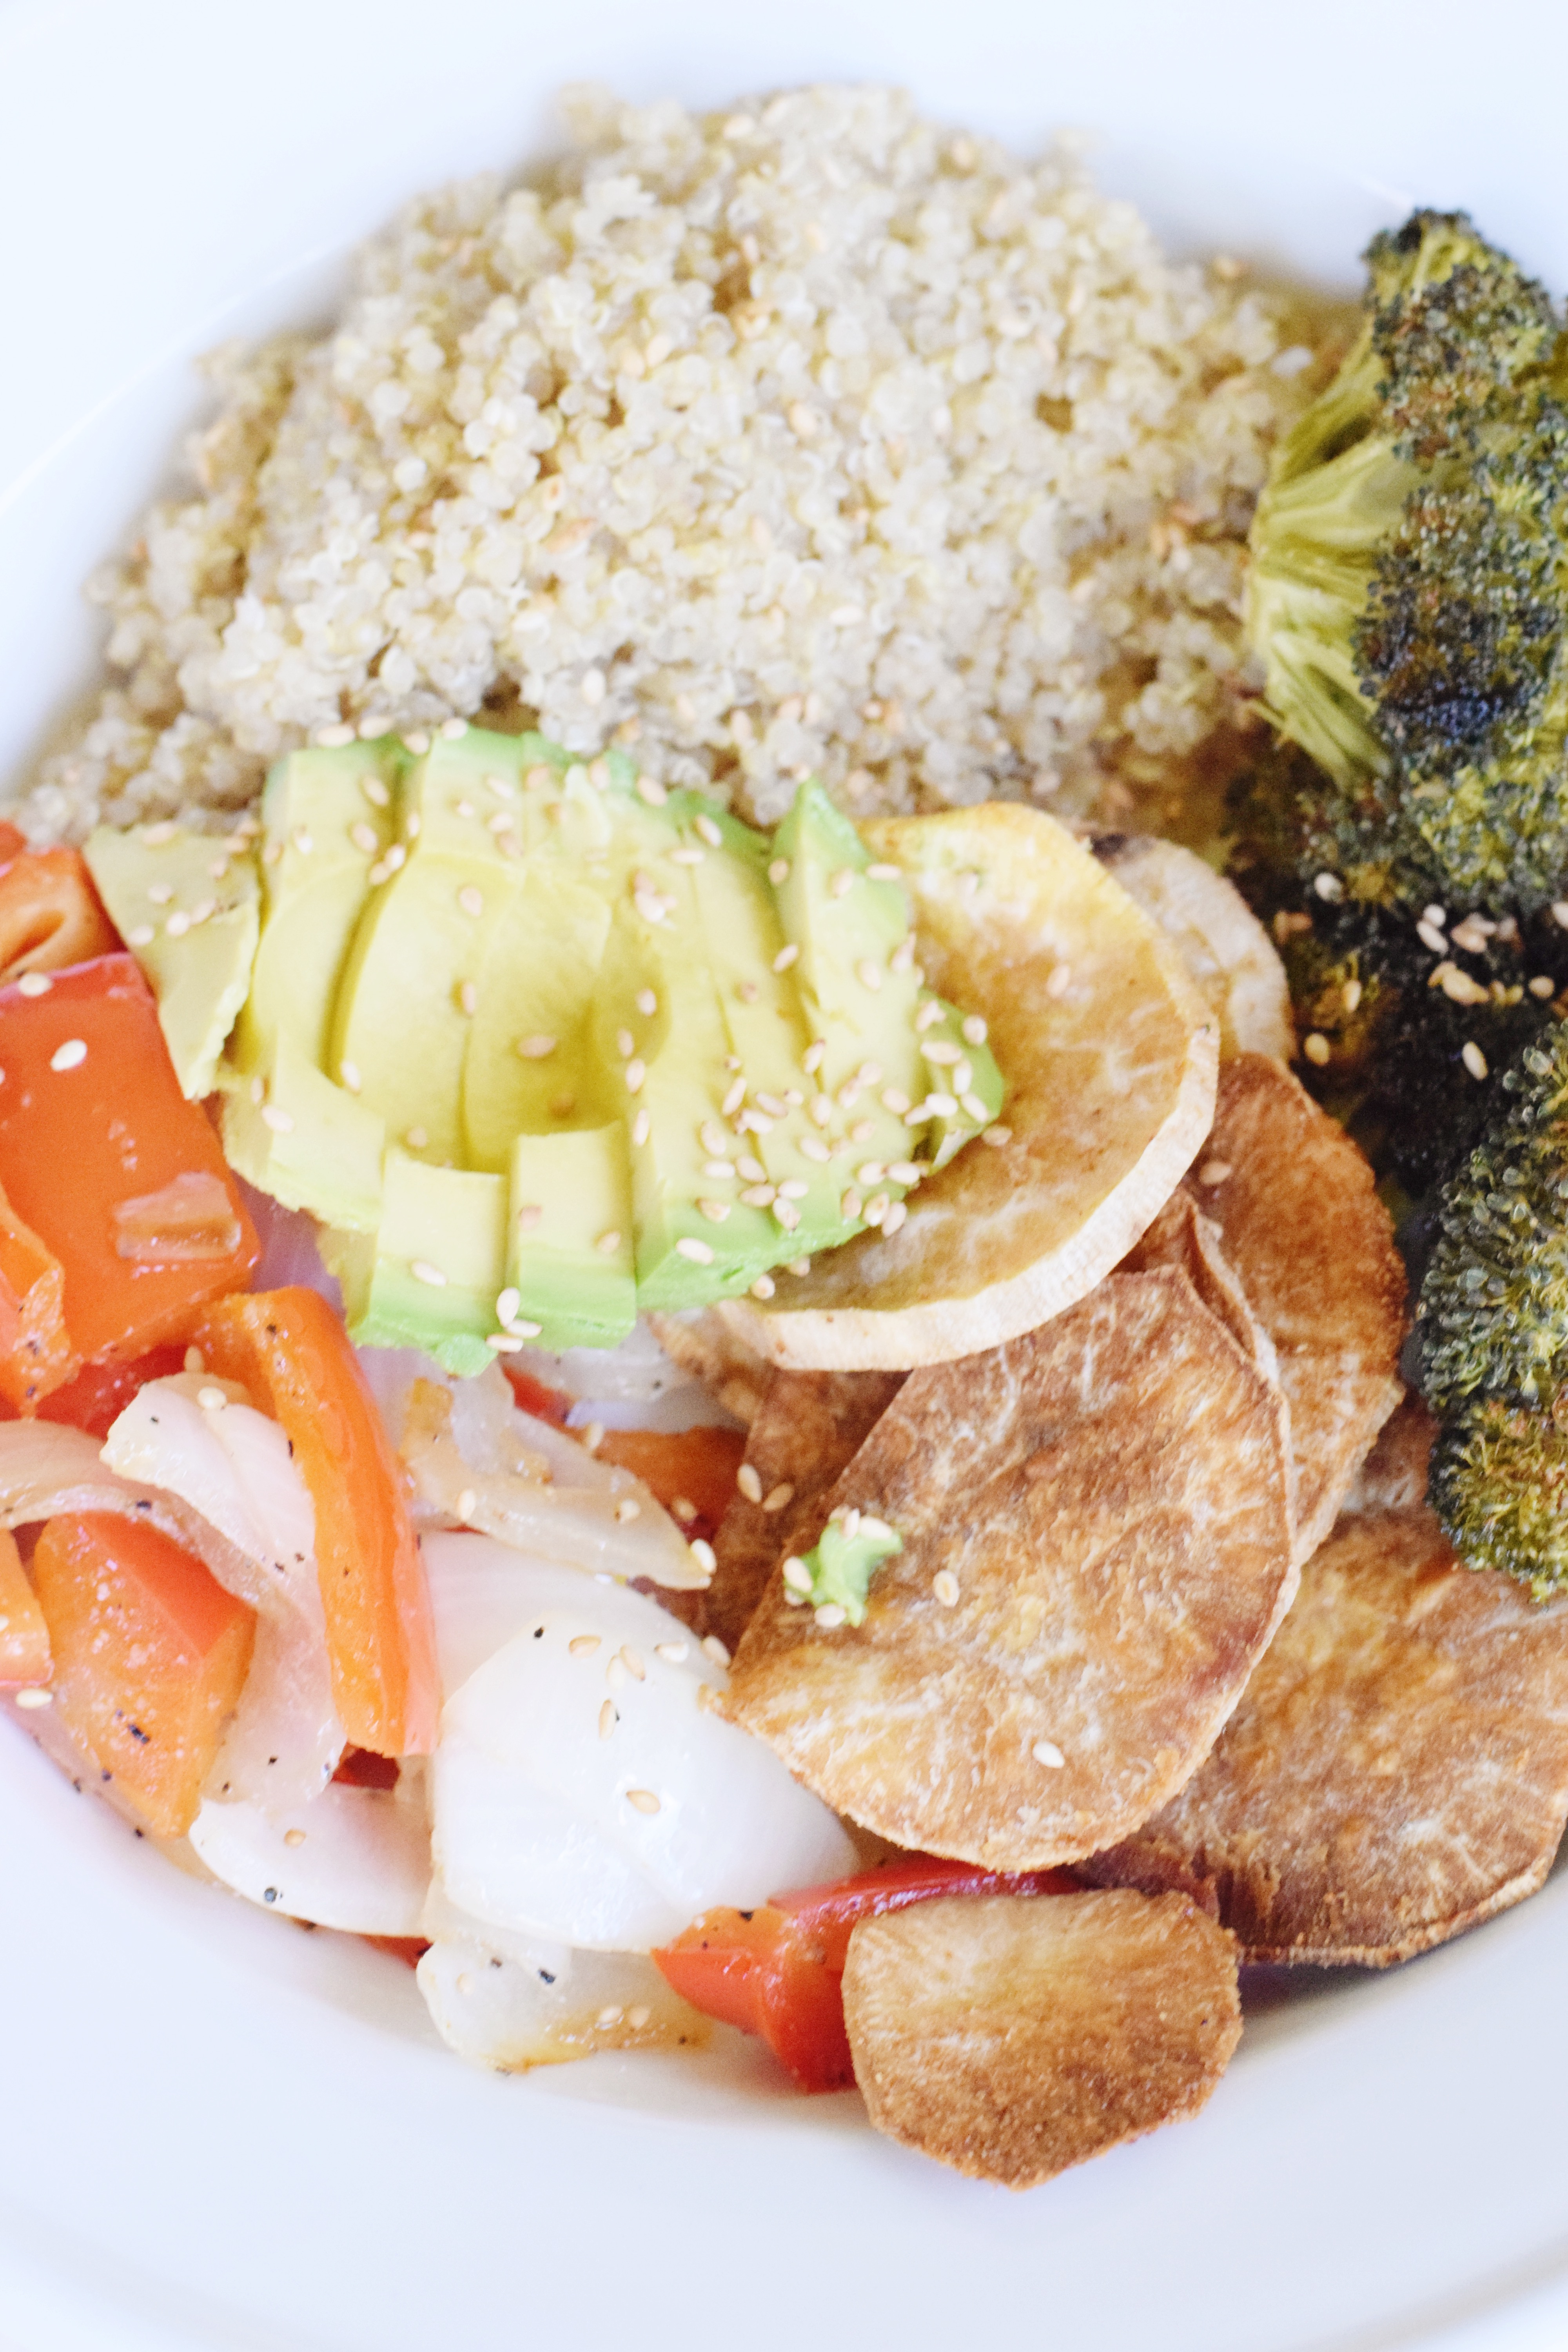 Beach Buddha Bowl - an all-veggie bowl topped with a simple sauce that is filling and delicious! - Vegetarian - Vegan - Dairy Free - Healthy Dinner Idea - Communikait